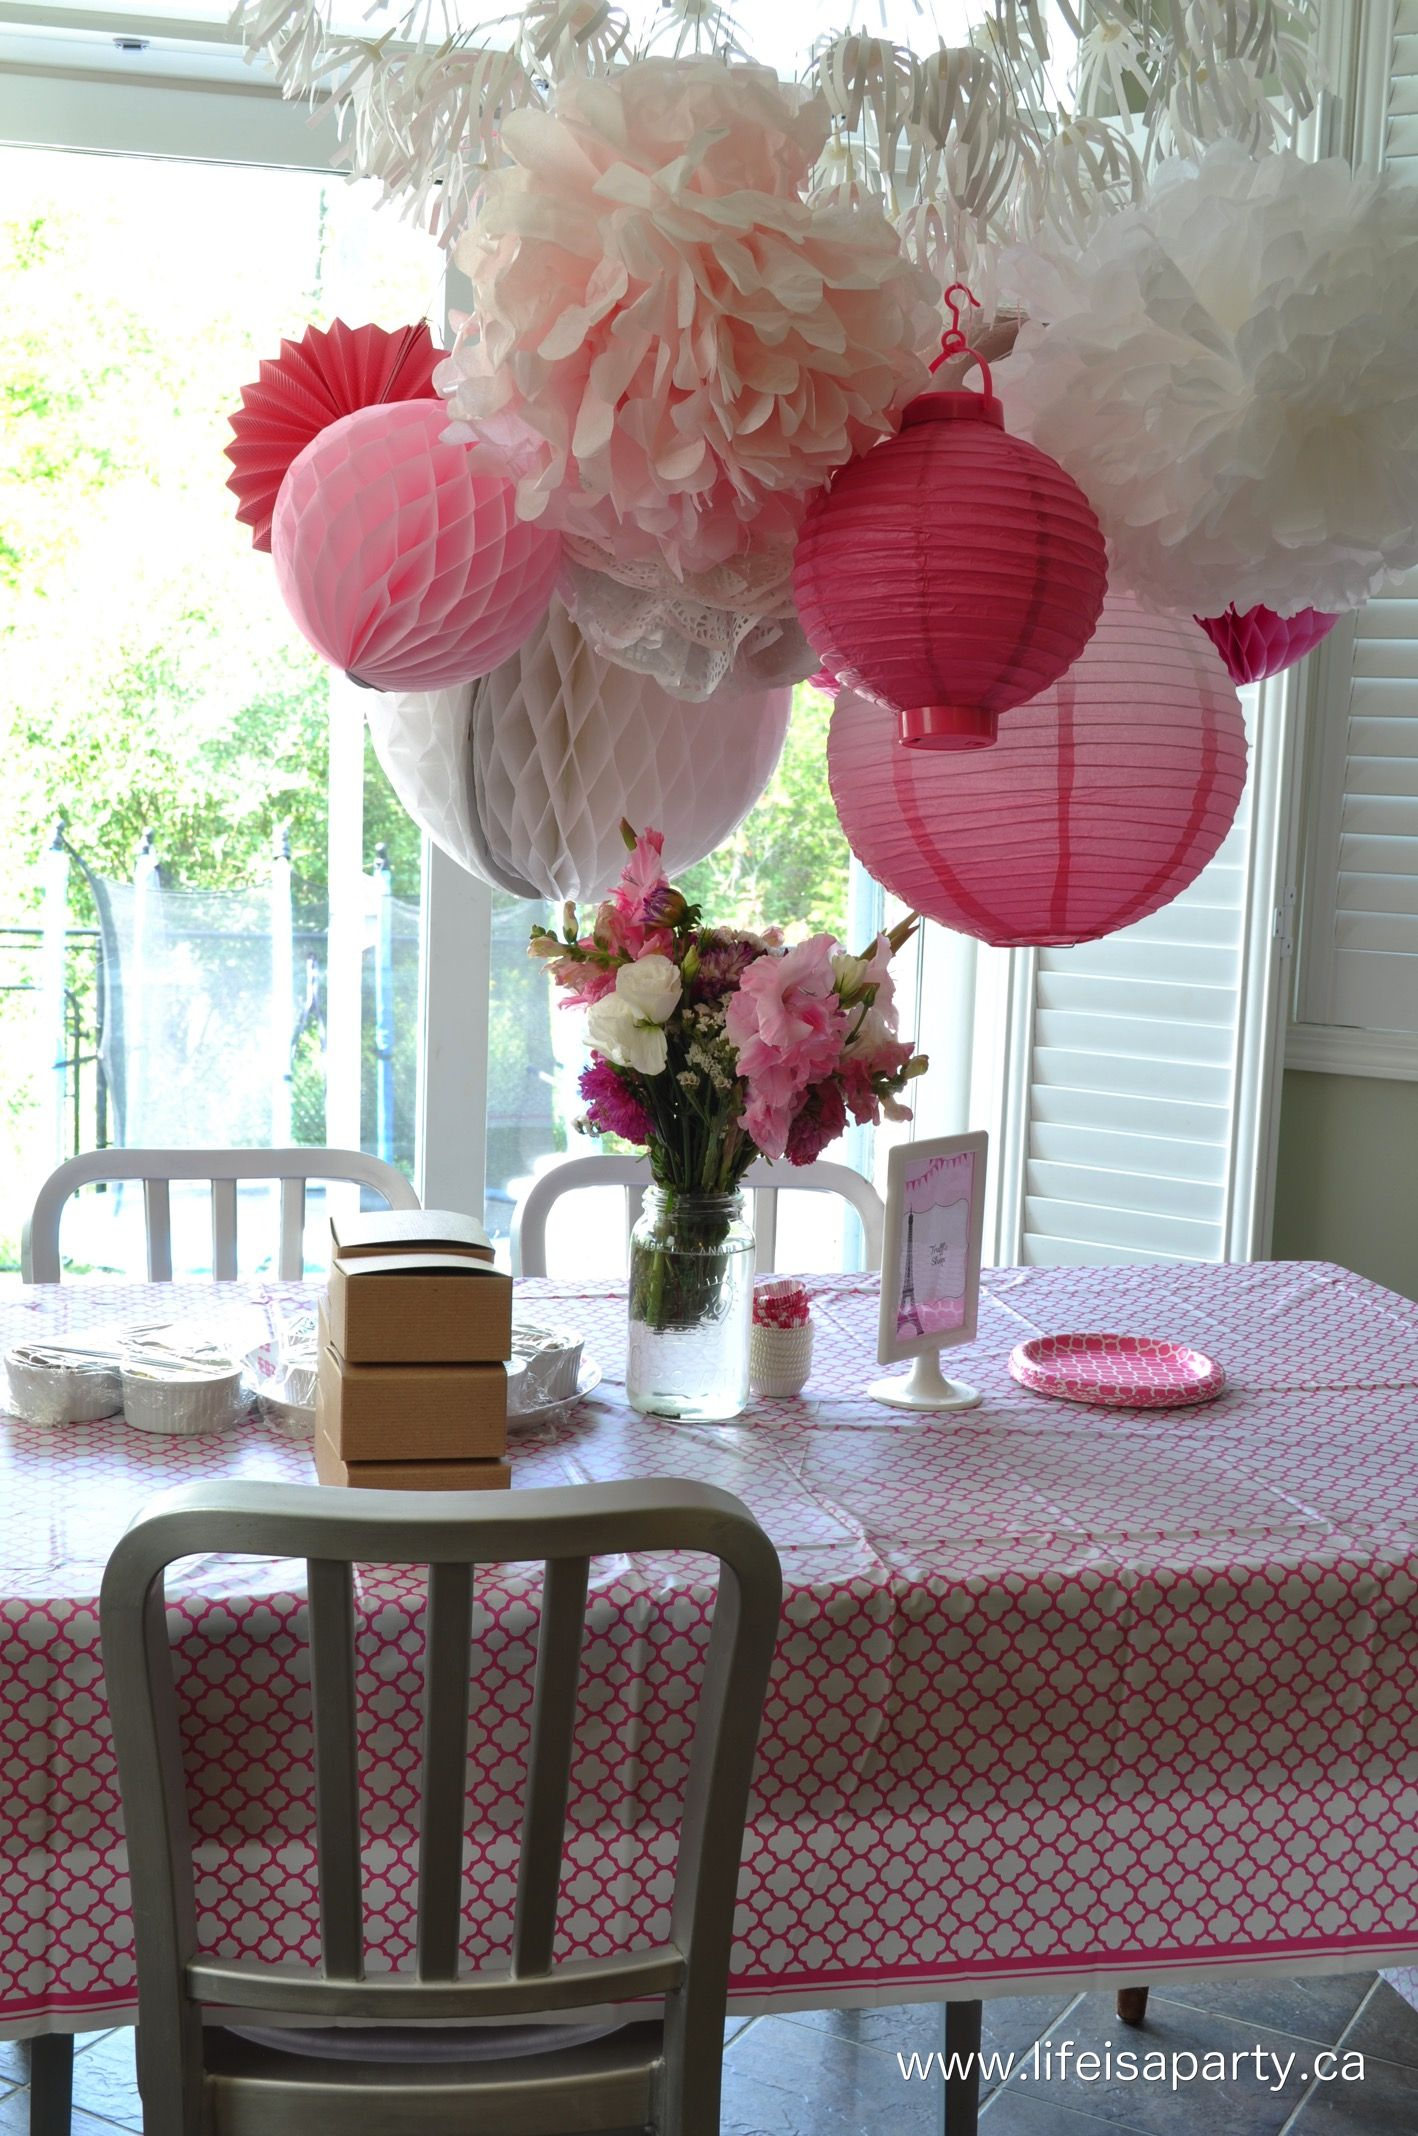 Paris themed birthday party ideas - Paris Birthday Party Part One Party Activities And Decorations Great Ideas For Activities